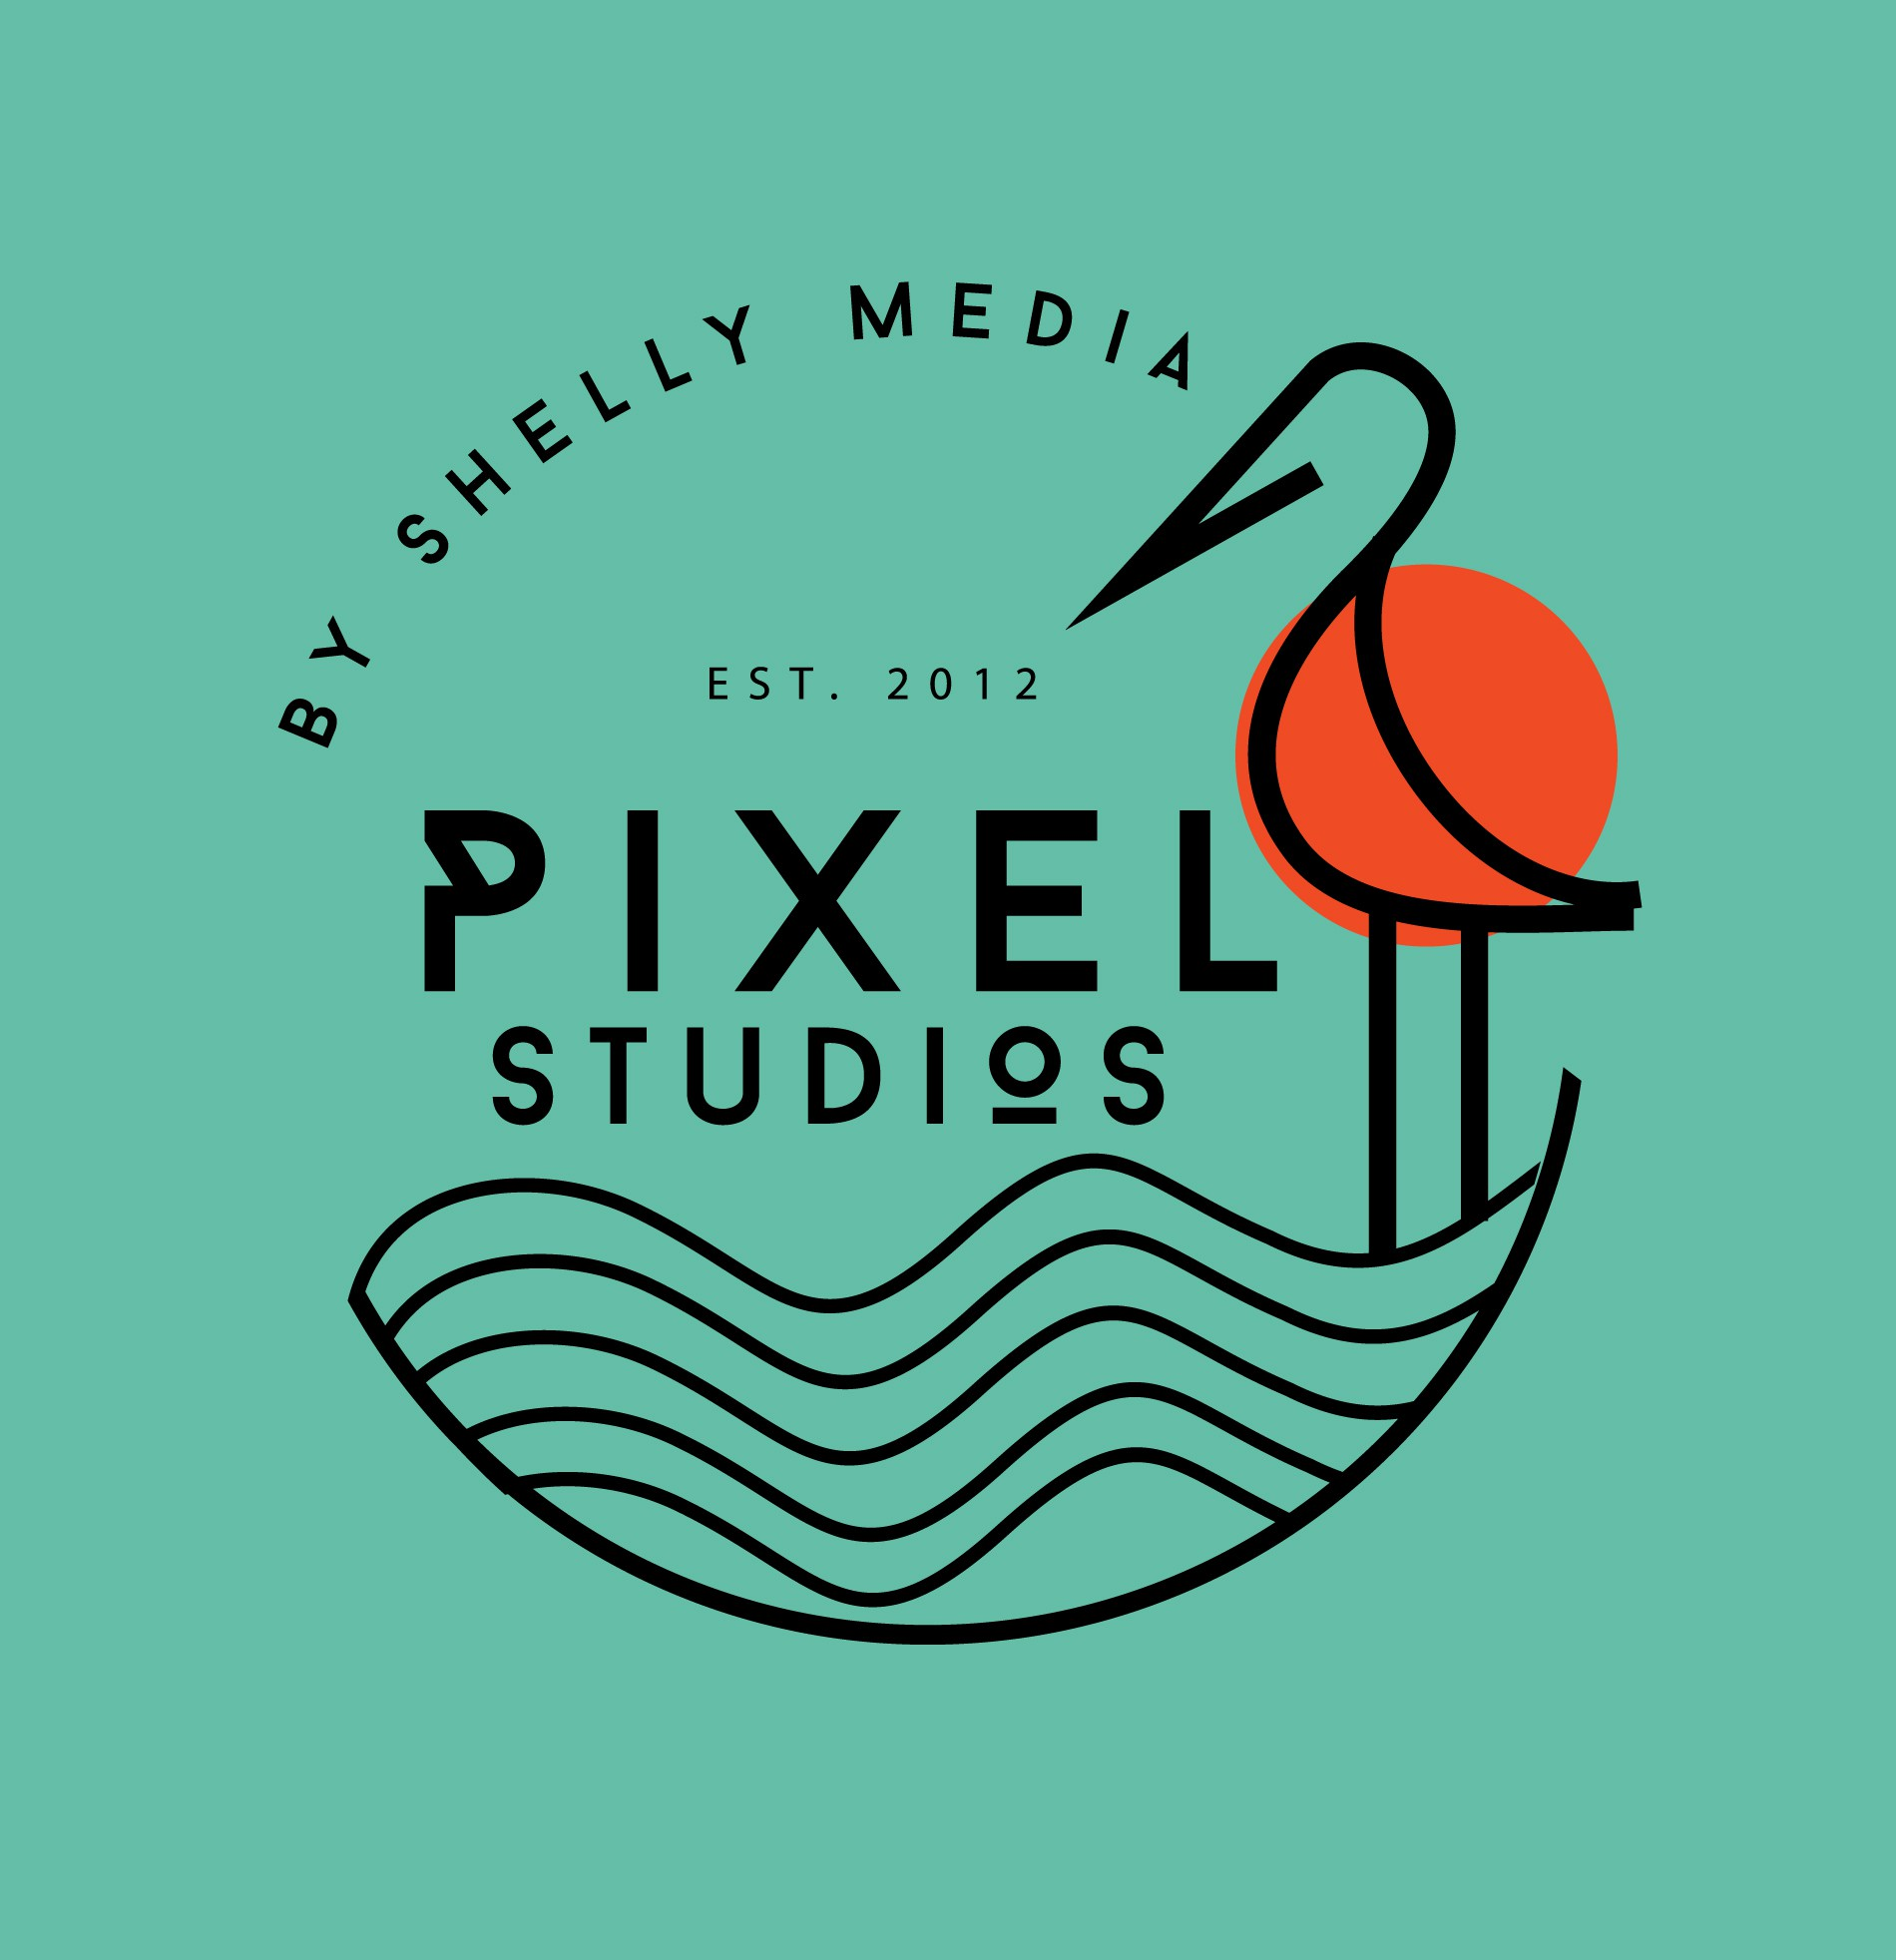 Charleston Soundstage and Photo Studio Looking for Clever Coastal Logo Update